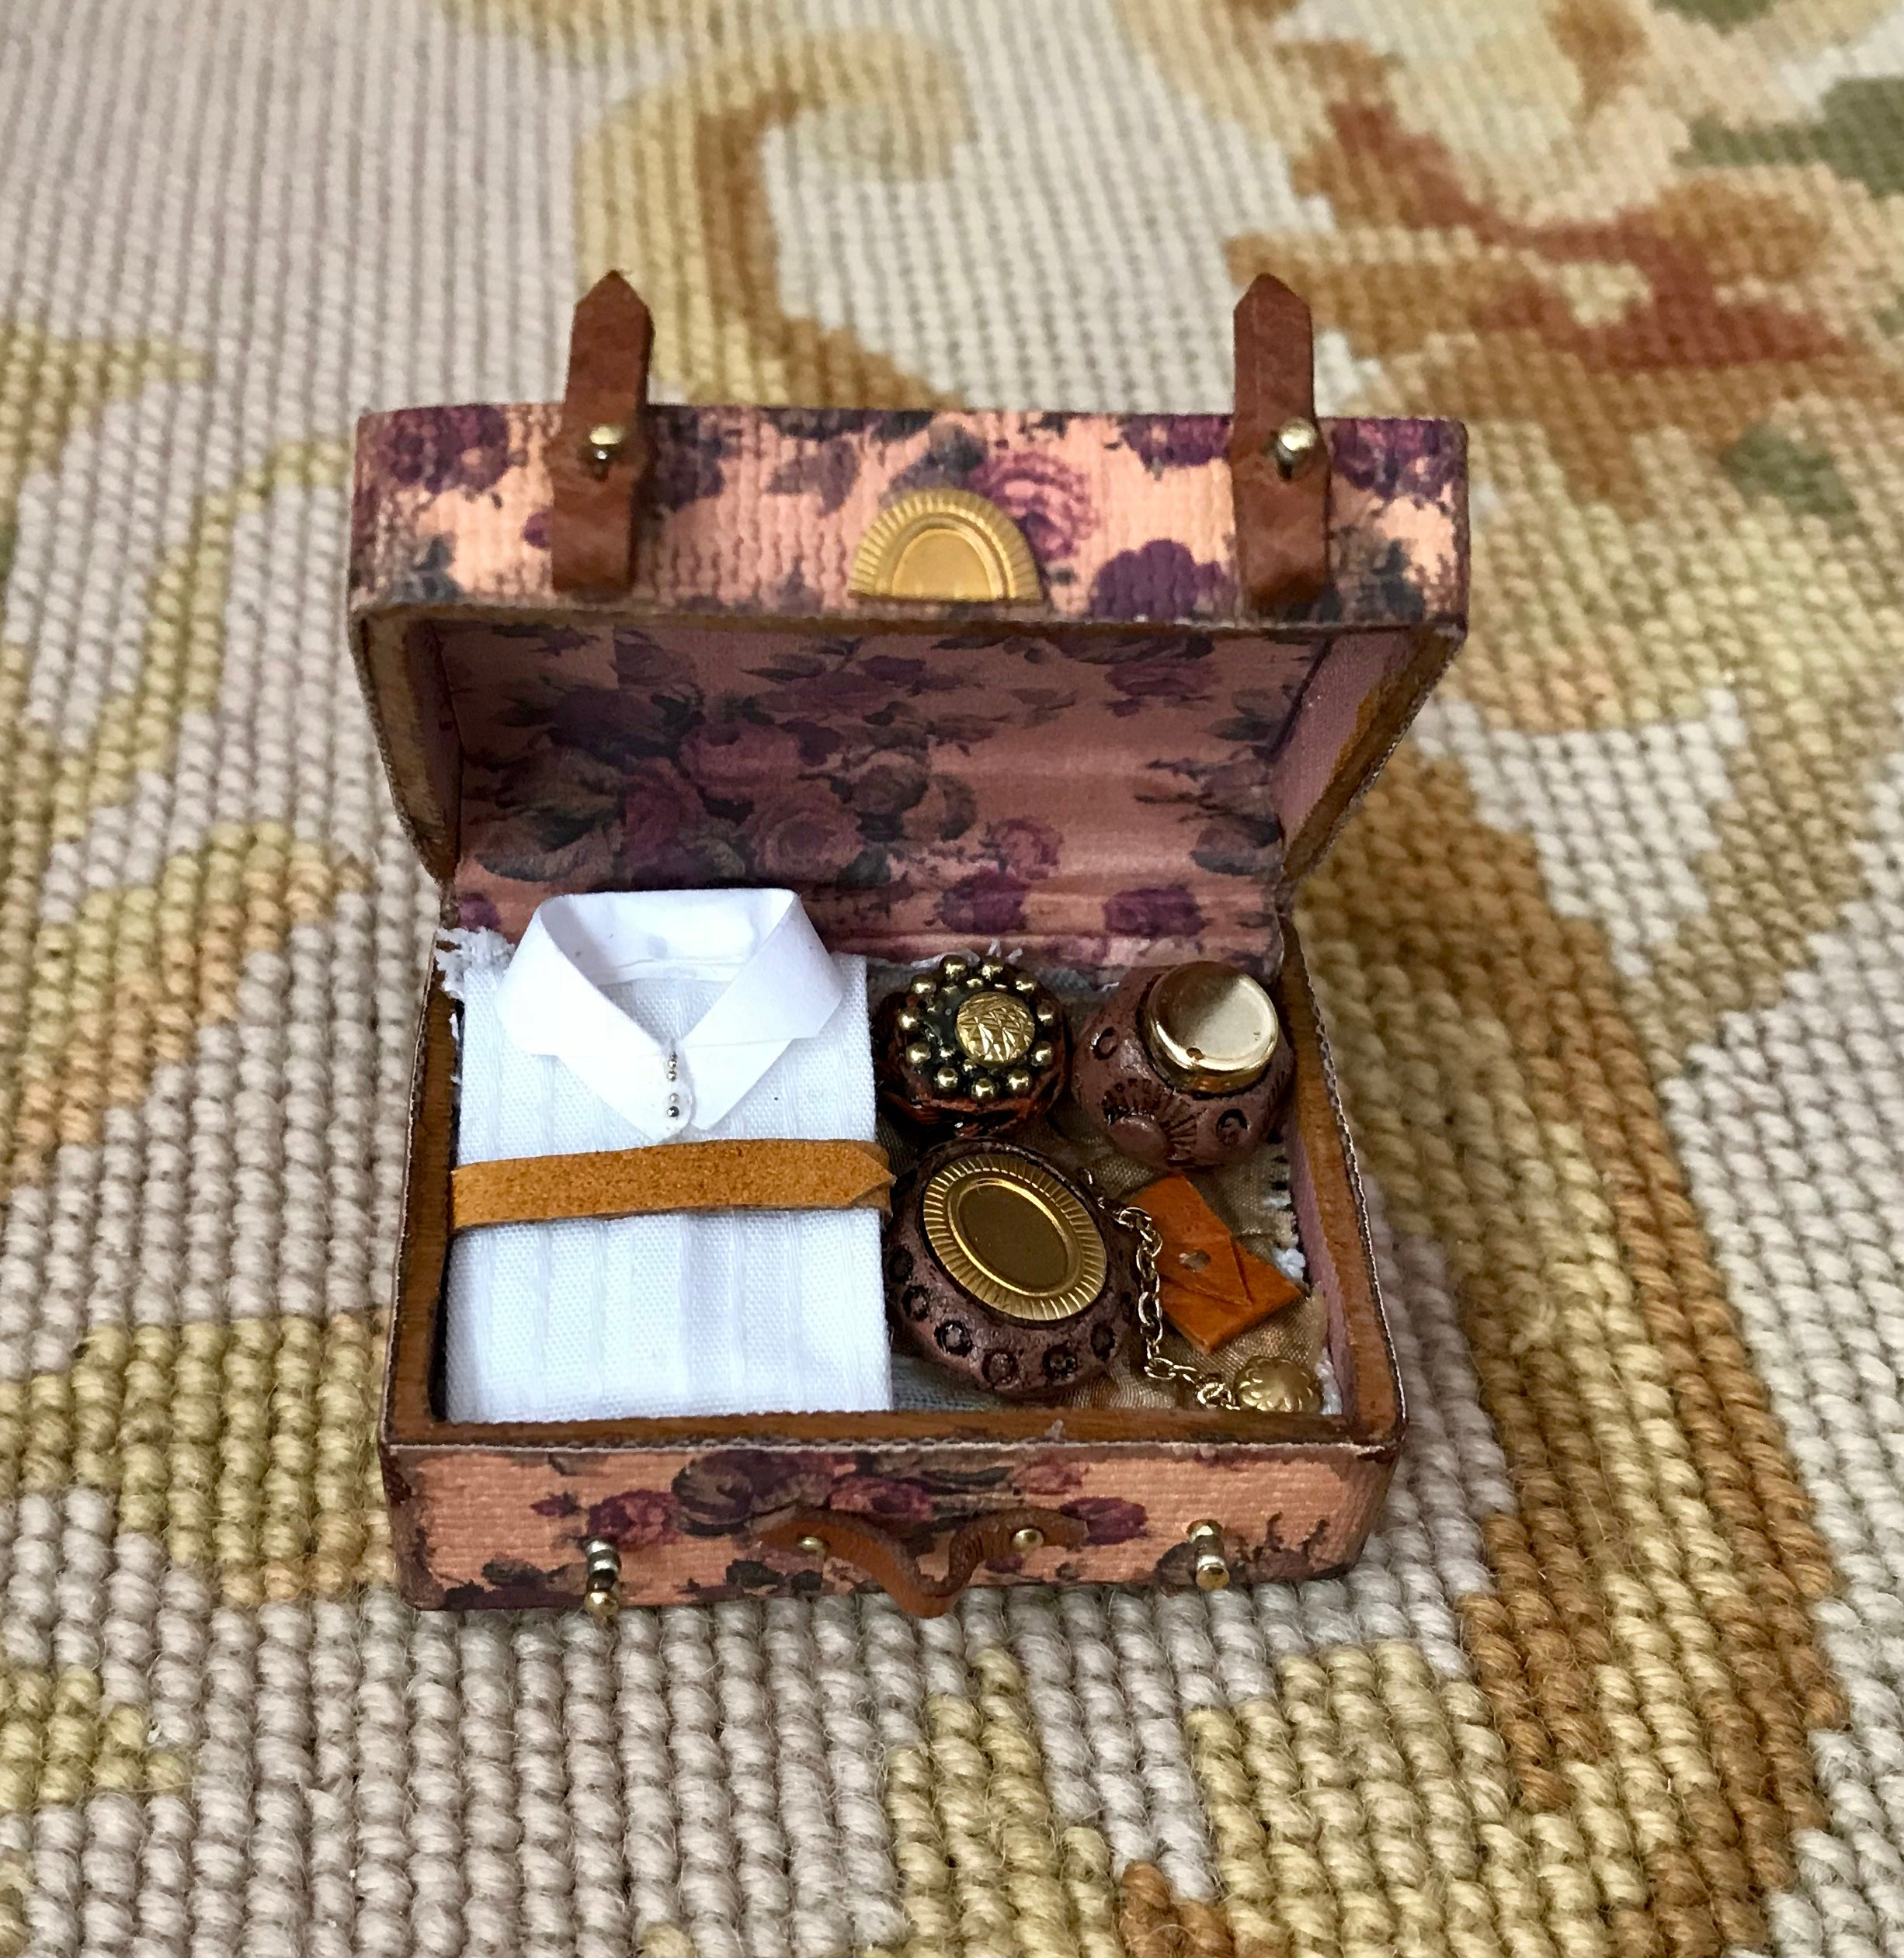 Luggage Satchel Valise Floral Filled 1:12 Dollhouse Miniature